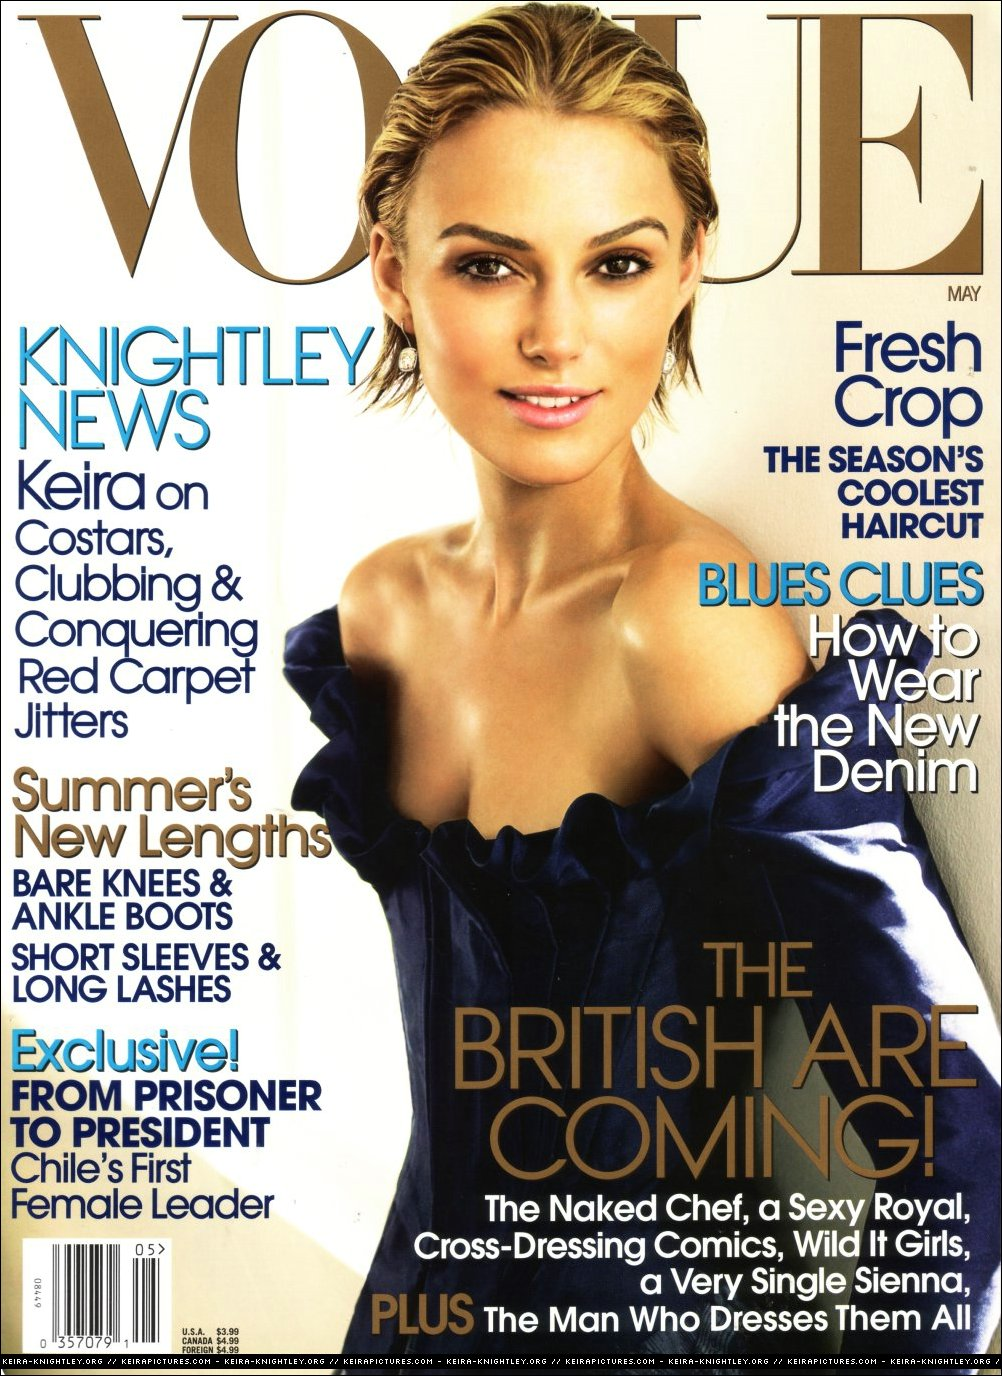 Vogue Usa Magazine Subscription: Covers Of Vogue USA With Keira Knightley, 958 2006